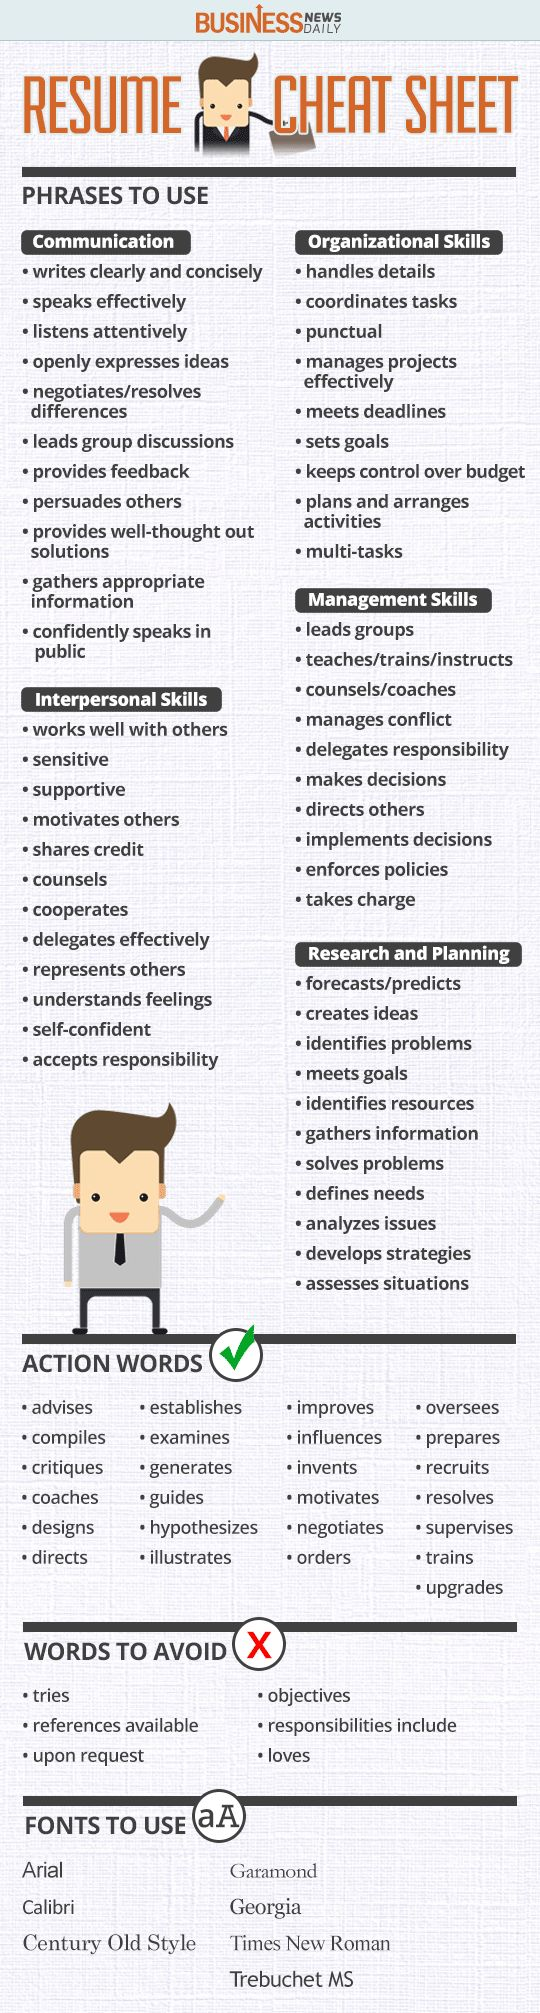 Opposenewapstandardsus  Ravishing  Ideas About Resume On Pinterest  Cv Format Resume Cv And  With Glamorous Resume Cheat Sheet Infographic Andrews Almost Done With A Complete Unit On Employment Which With Delectable Bus Driver Resume Also Skills For Customer Service Resume In Addition Hr Coordinator Resume And Salesman Resume As Well As Skills And Abilities Resume Examples Additionally Problem Solving Skills Resume From Pinterestcom With Opposenewapstandardsus  Glamorous  Ideas About Resume On Pinterest  Cv Format Resume Cv And  With Delectable Resume Cheat Sheet Infographic Andrews Almost Done With A Complete Unit On Employment Which And Ravishing Bus Driver Resume Also Skills For Customer Service Resume In Addition Hr Coordinator Resume From Pinterestcom